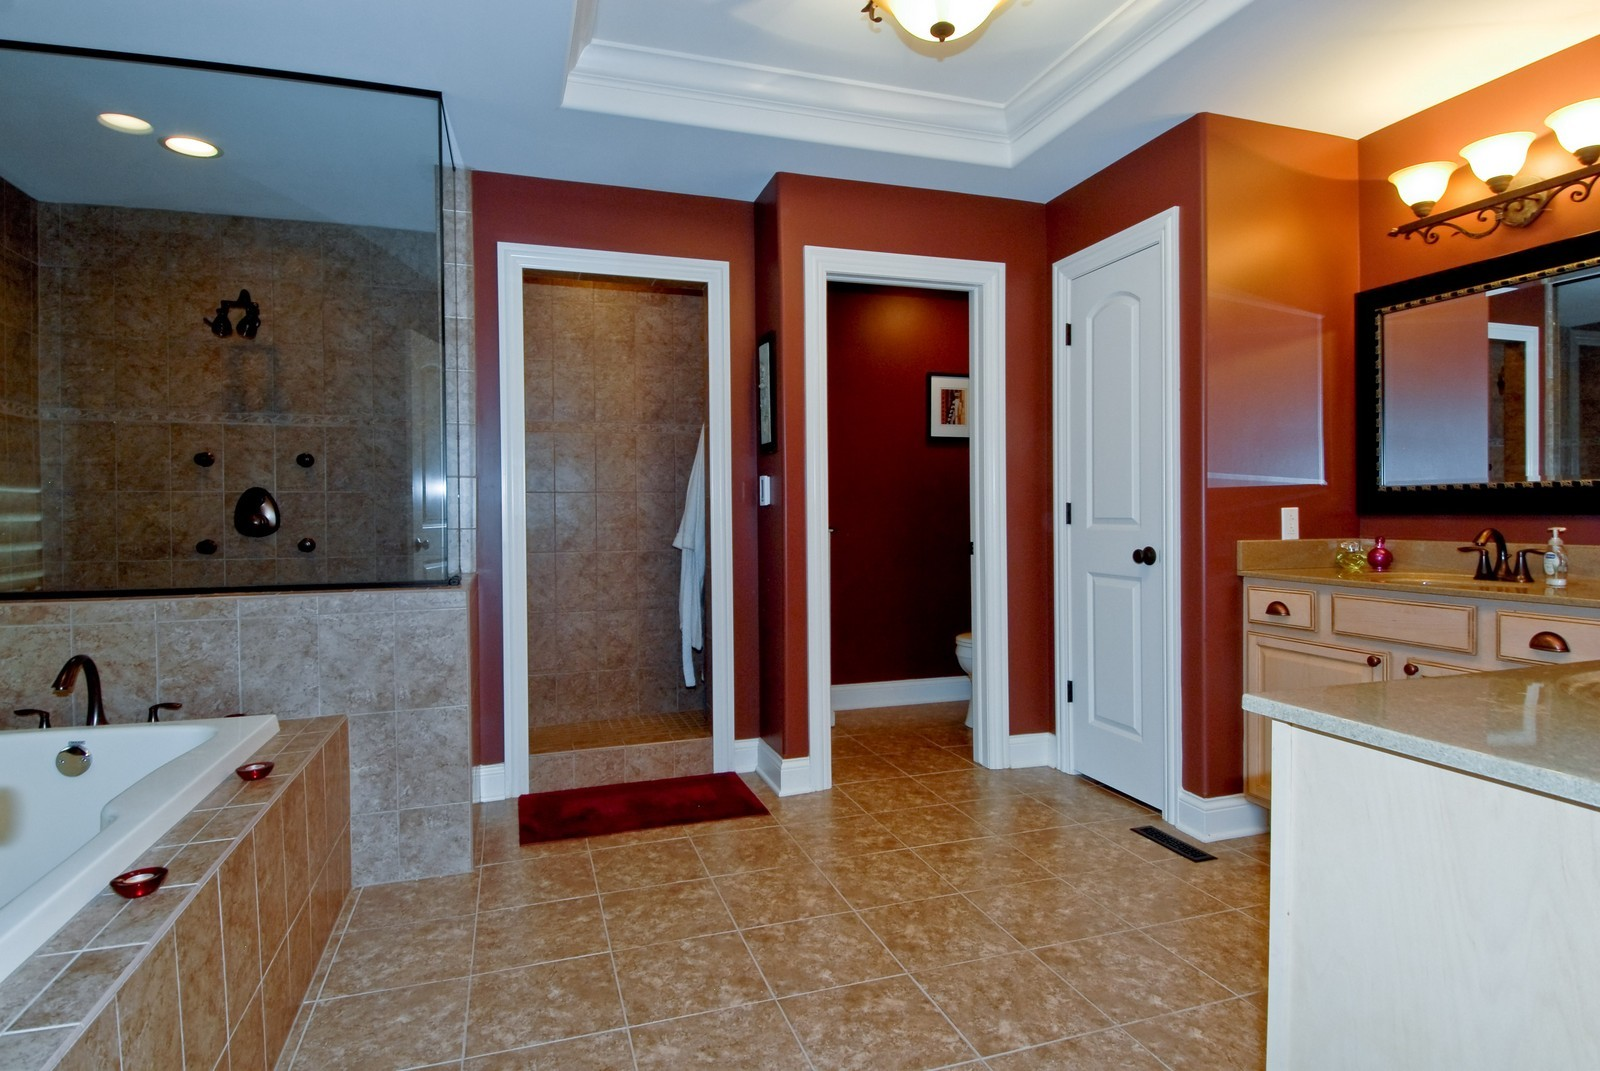 Real Estate Photography - 1221 Wing Ave, St. Charles, IL, 60174 - Master Bathroom